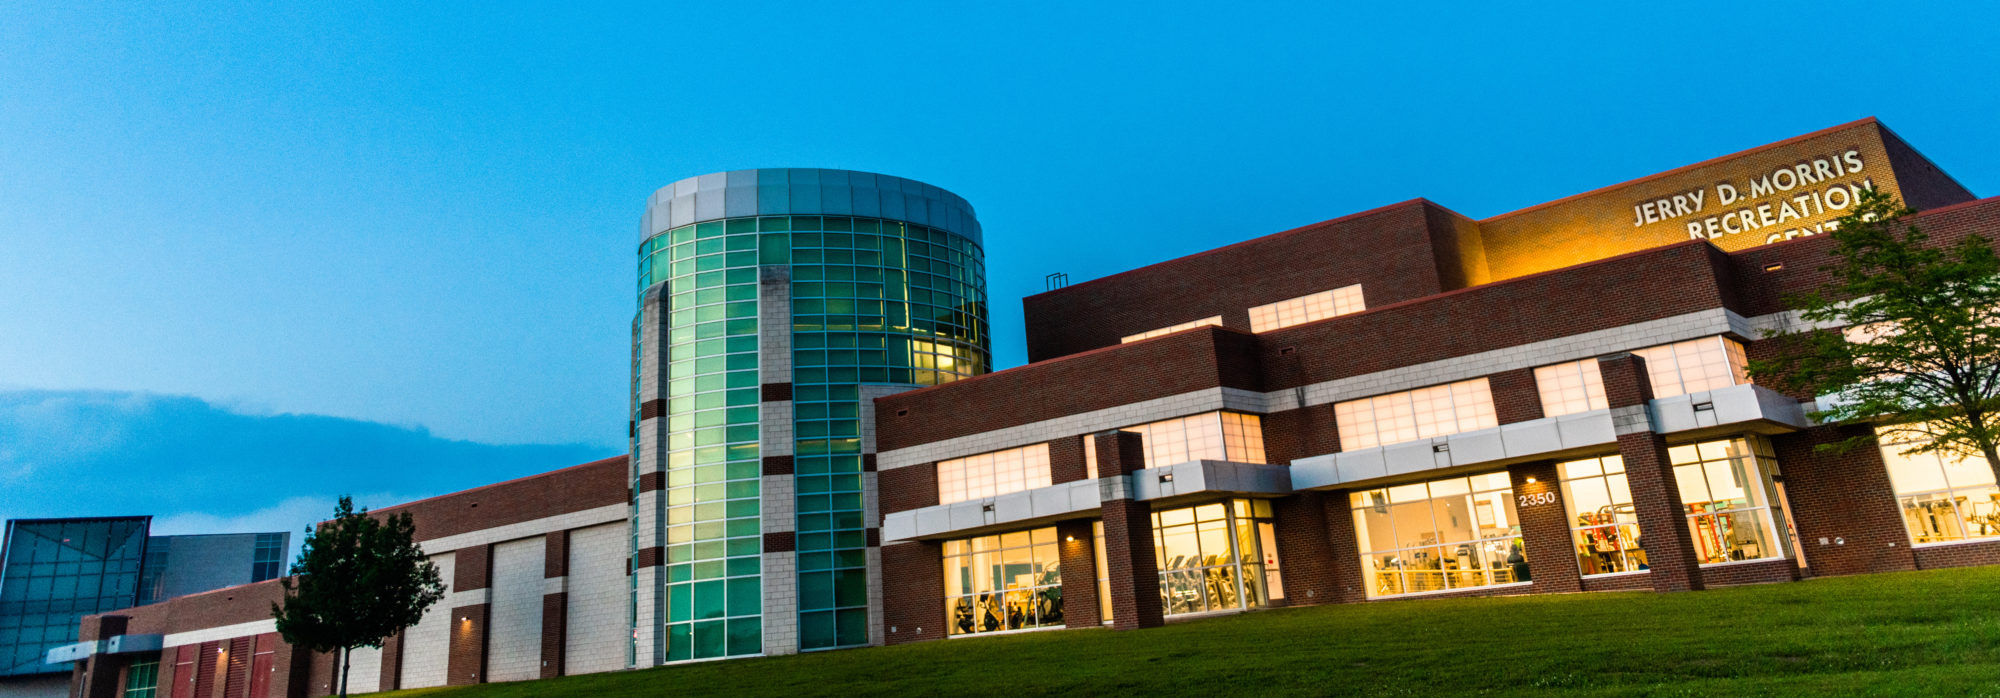 Street view of the Morris Recreation Center.